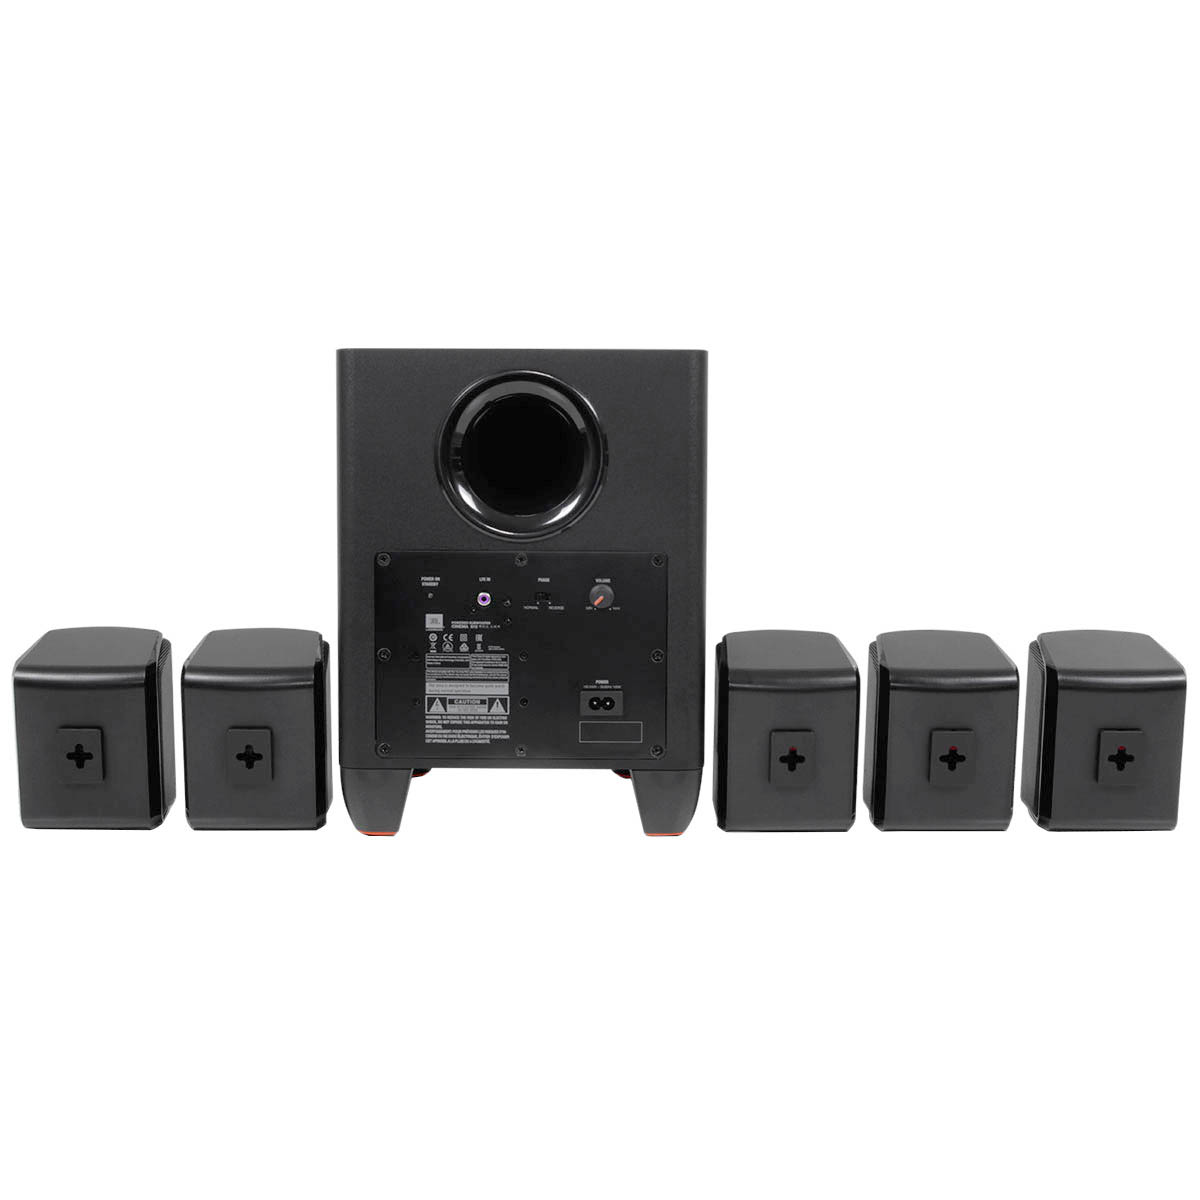 Cinema510 - Kit Caixas Home Theater 5.1 Cinema 510 - JBL